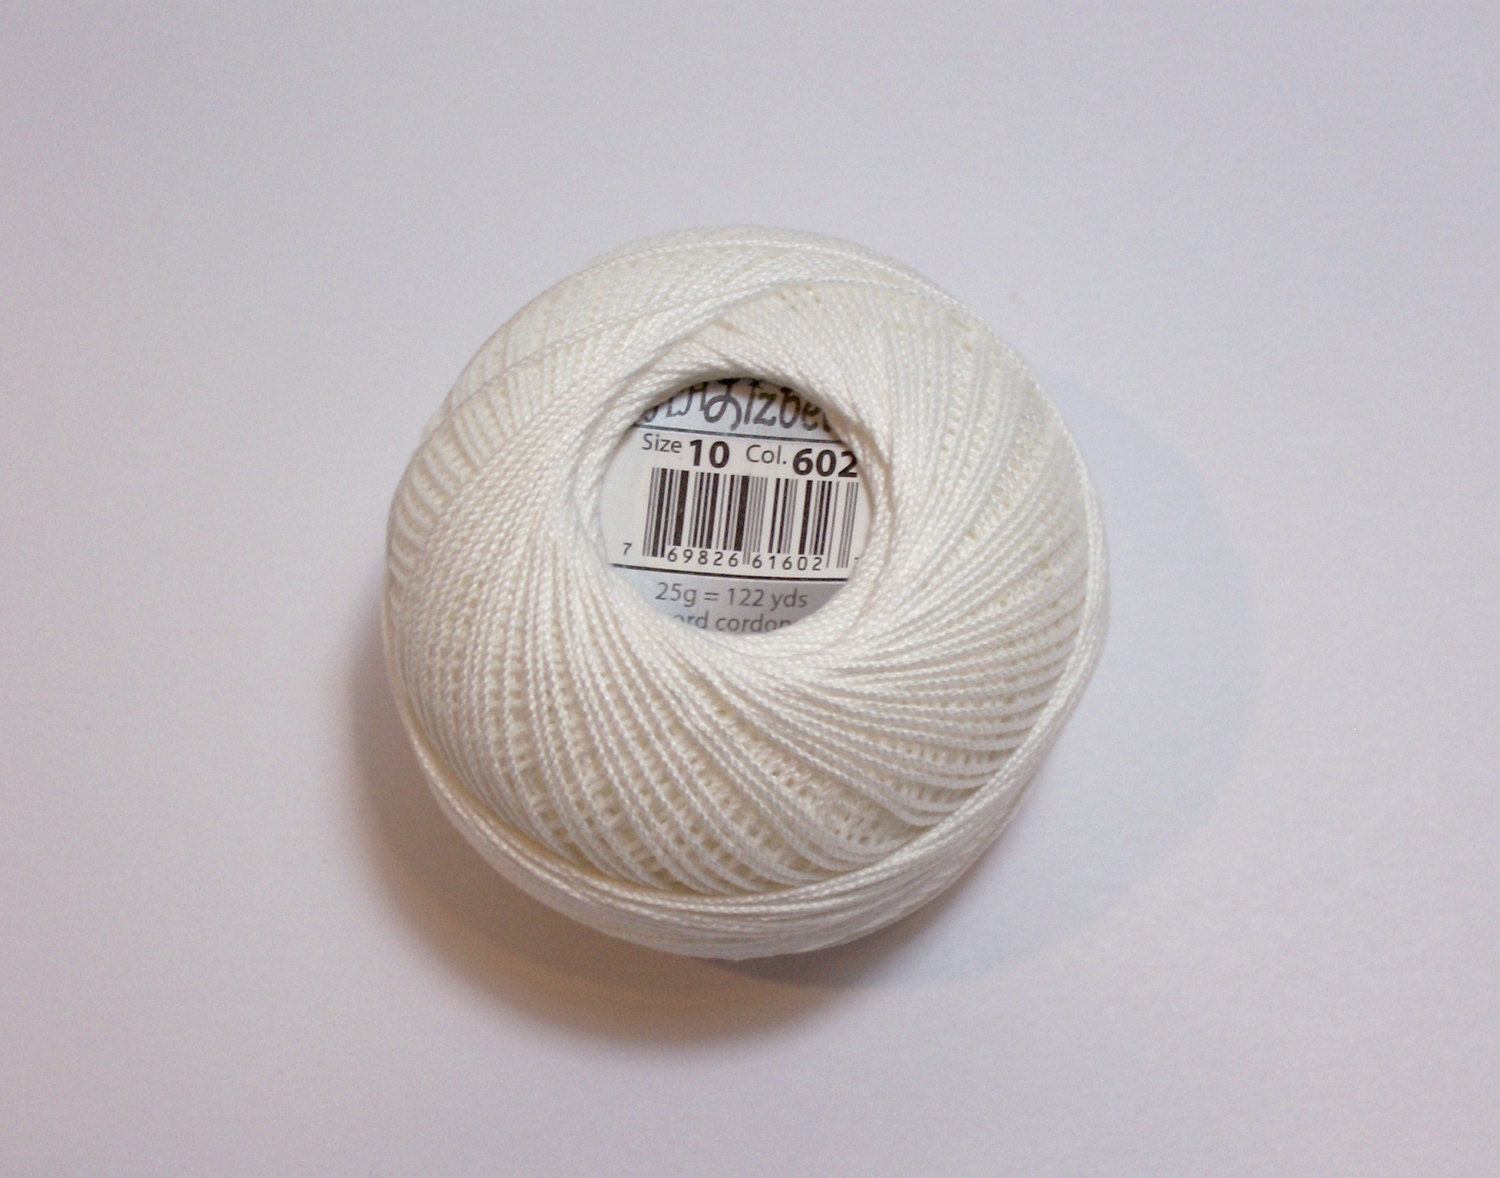 Ivory Crochet Thread Lizbeth Size 10 Cotton by GriffithGardens